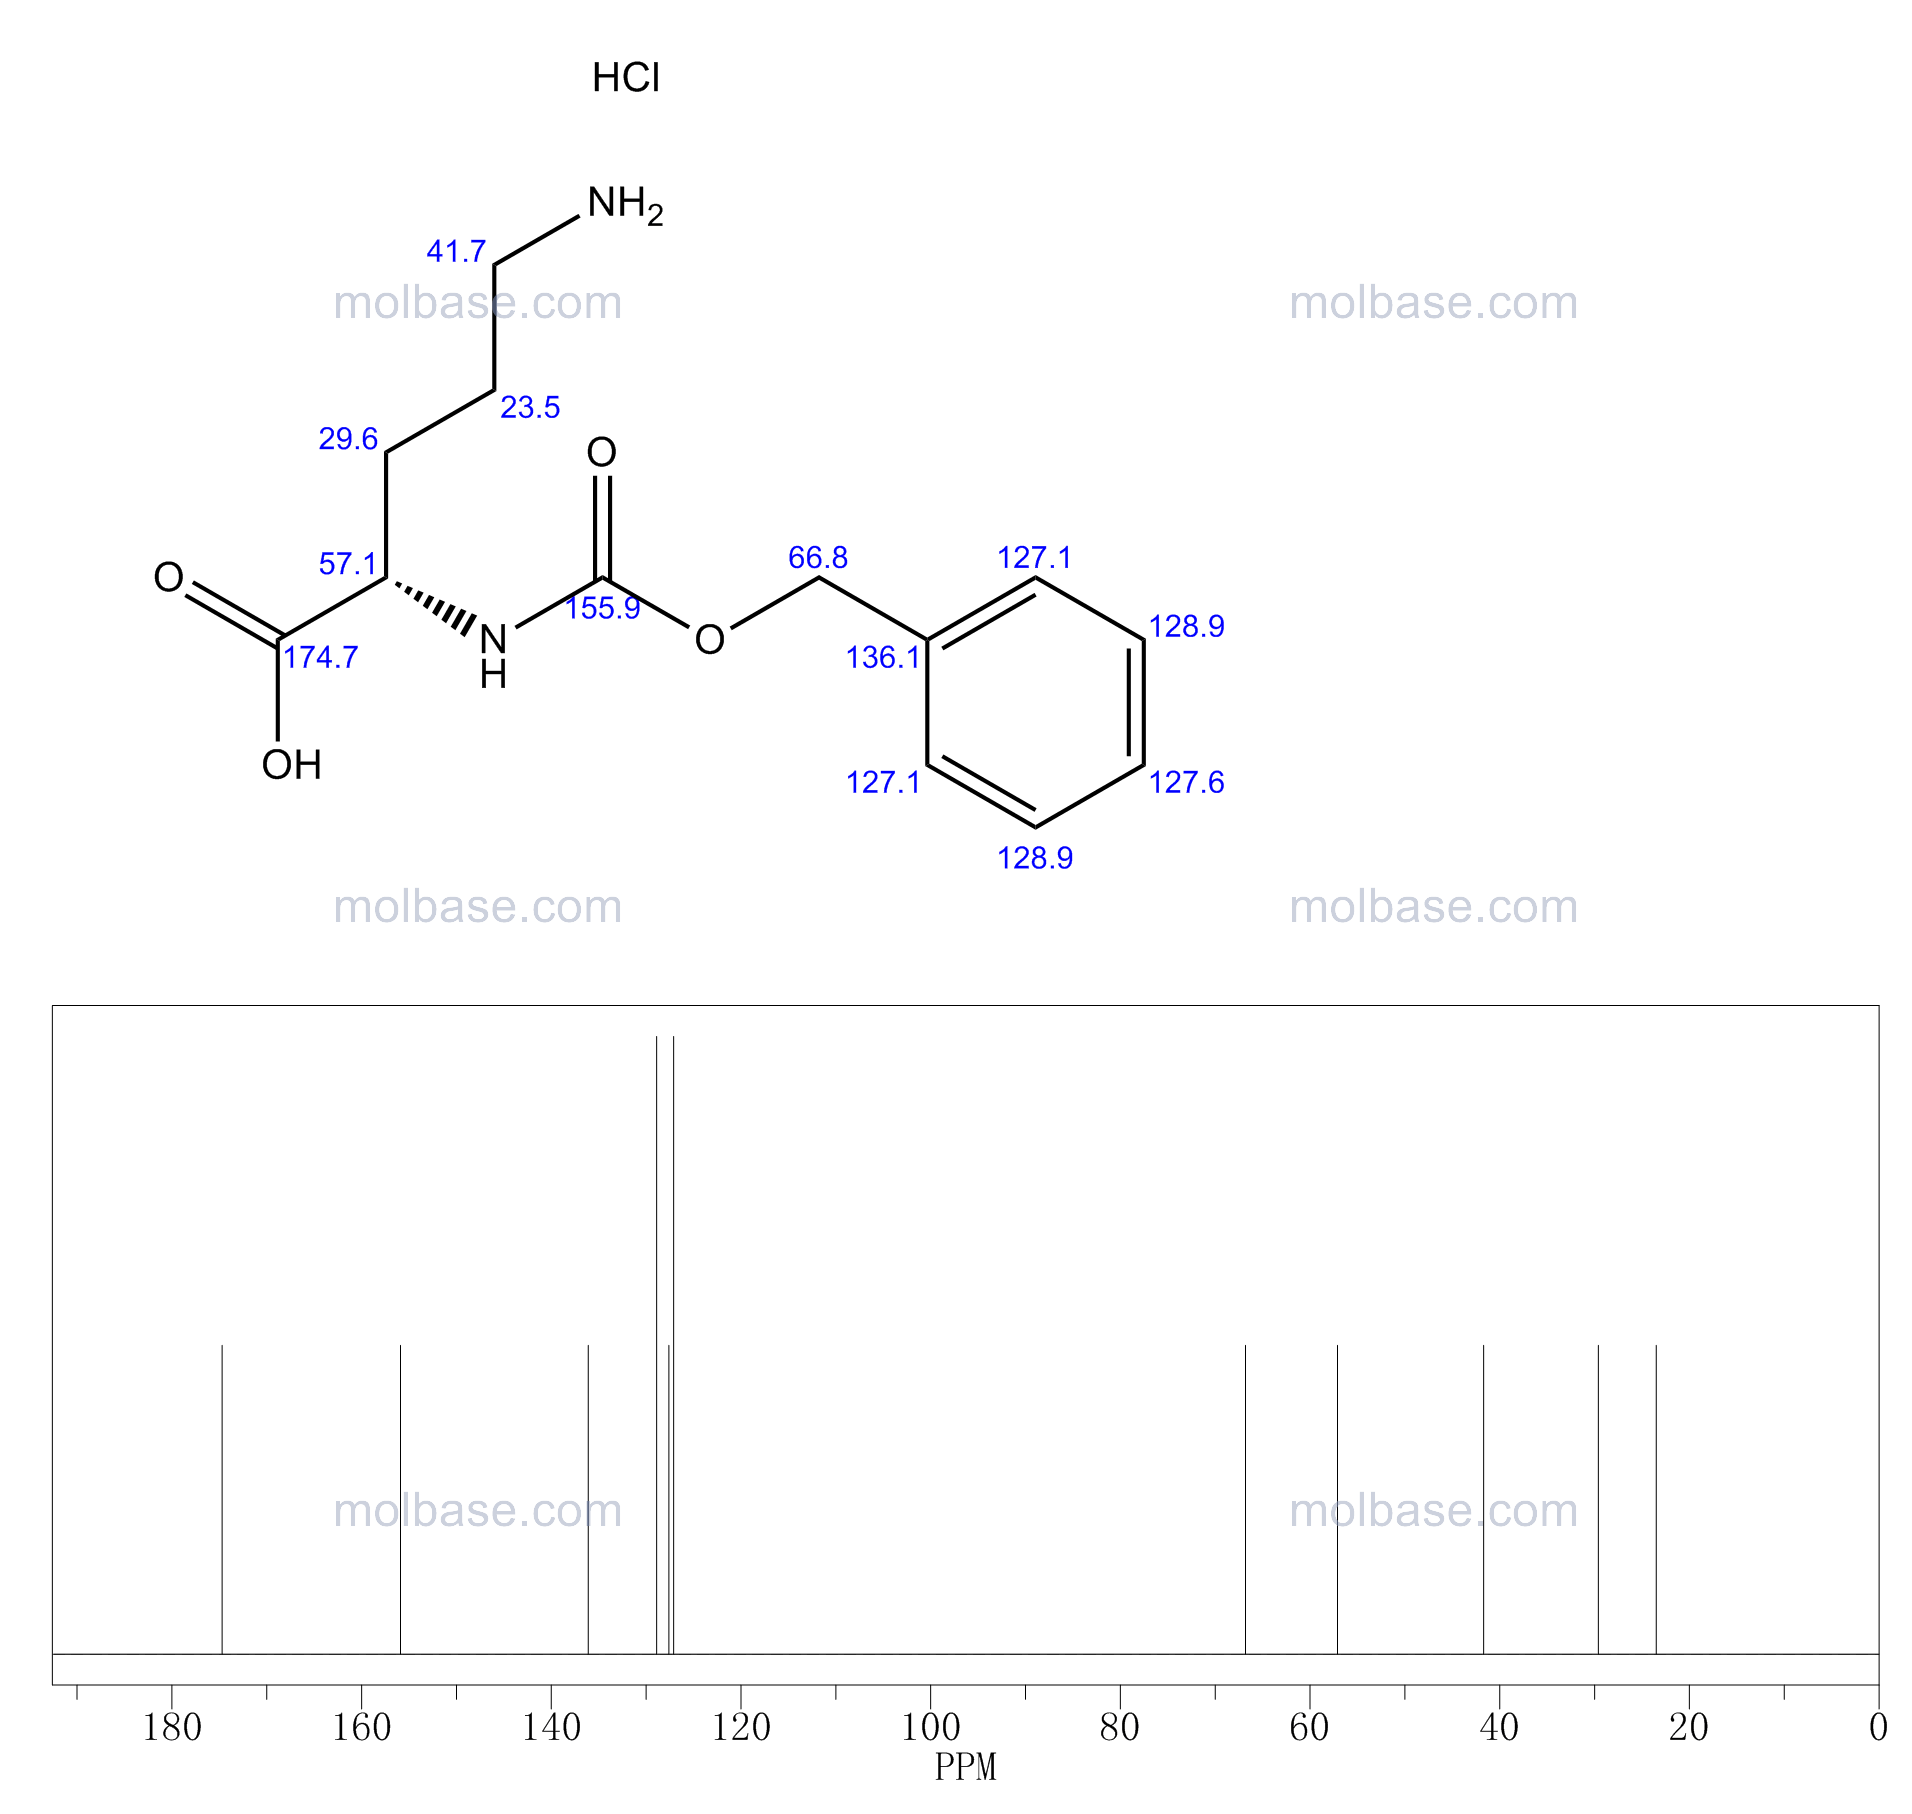 (2S)-5-amino-2-(phenylmethoxycarbonylamino)pentanoic acid,hydrochloride NMR spectra analysis, Chemical CAS NO. 92455-59-9 NMR spectral analysis, (2S)-5-amino-2-(phenylmethoxycarbonylamino)pentanoic acid,hydrochloride C-NMR spectrum